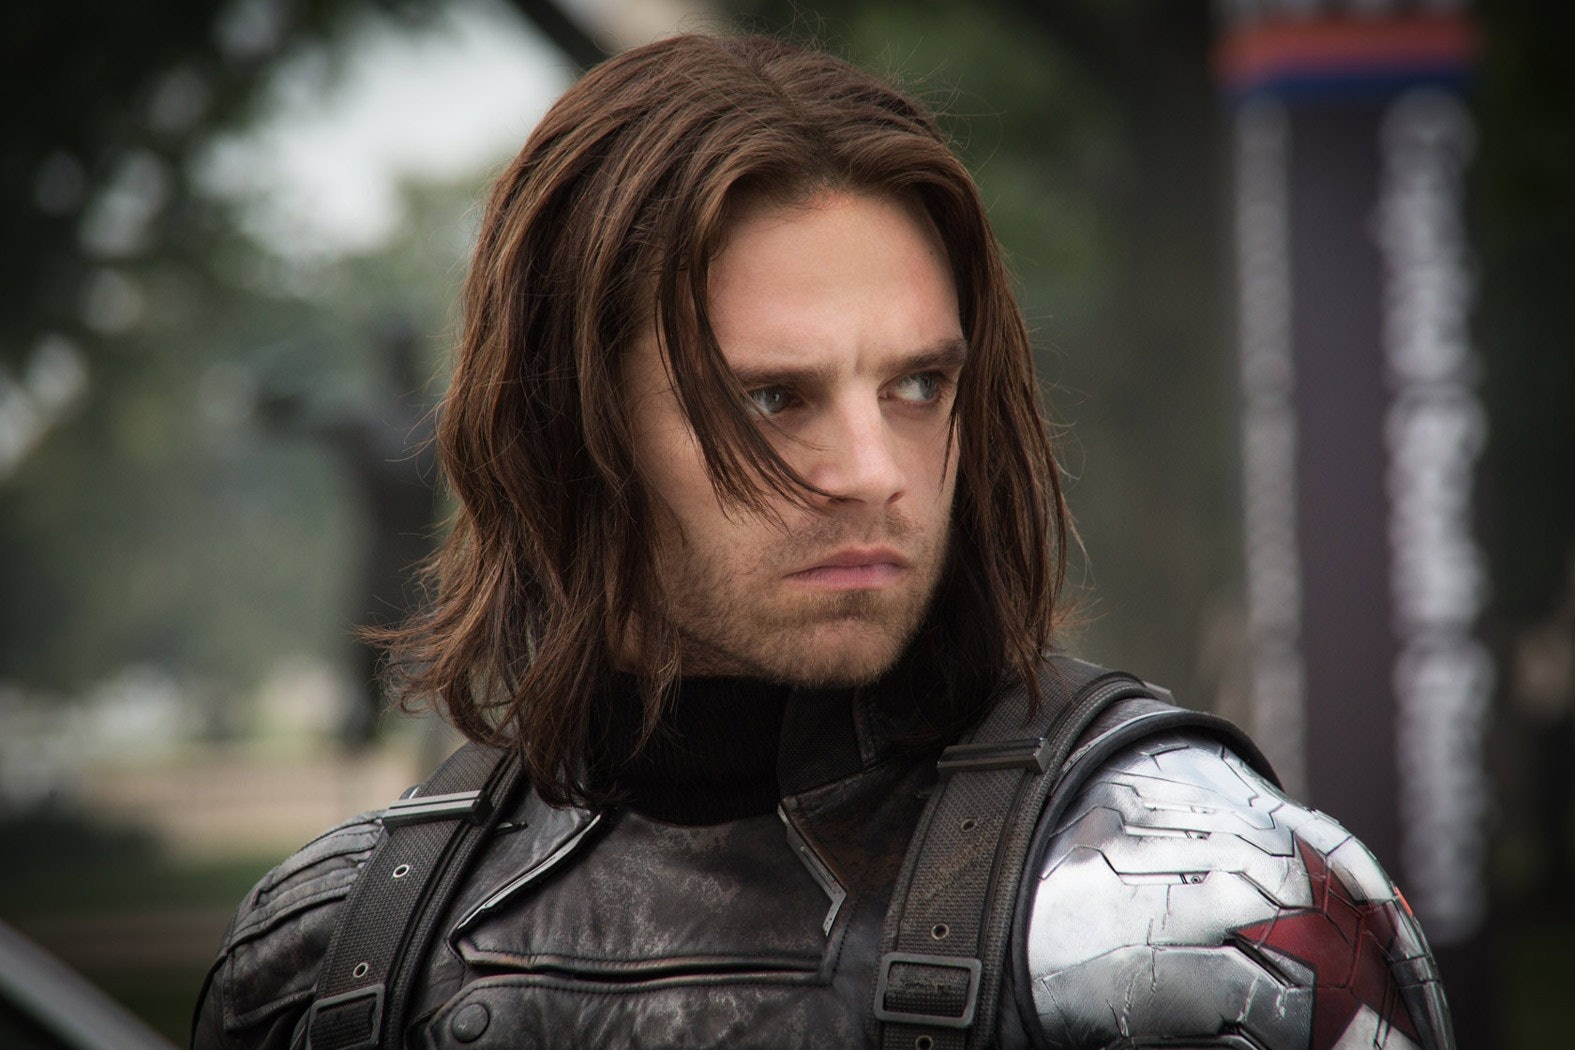 How Does Bucky Know Black Panther? Fans Are Asking Questions After